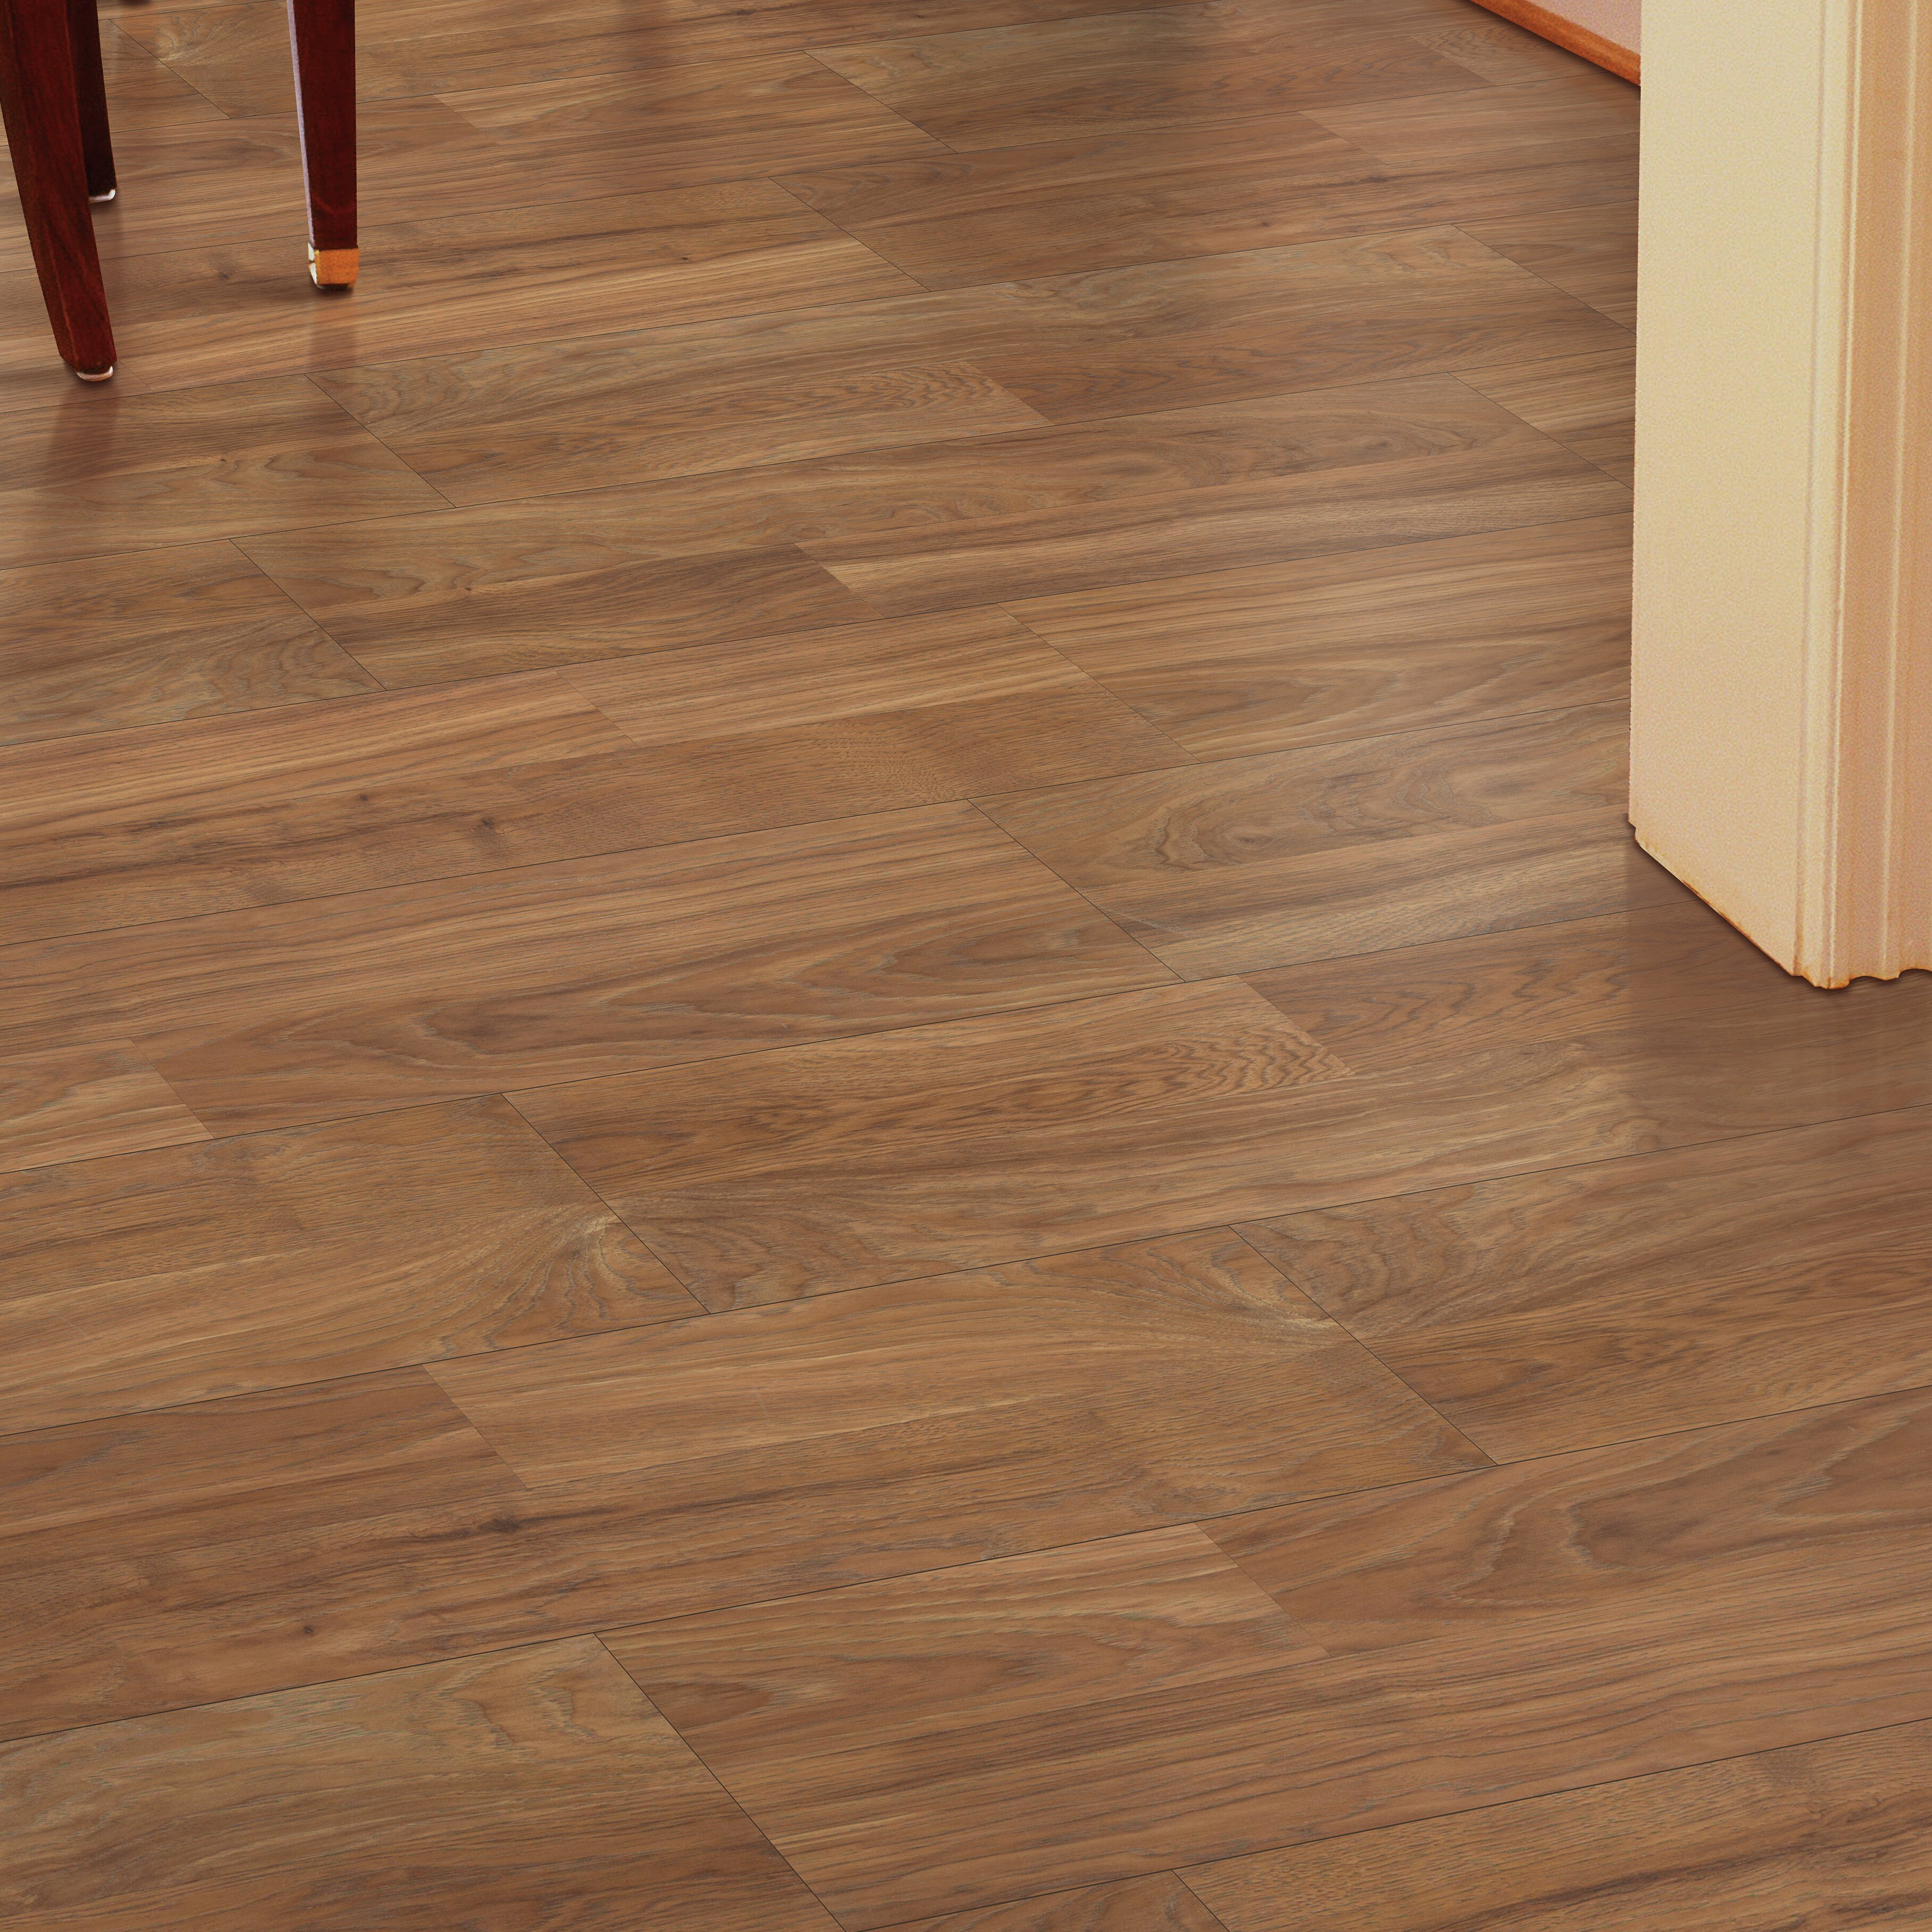 Mohawk Copeland 8 X 47 7 87mm Hickory Laminate Flooring In Honey Wayfair